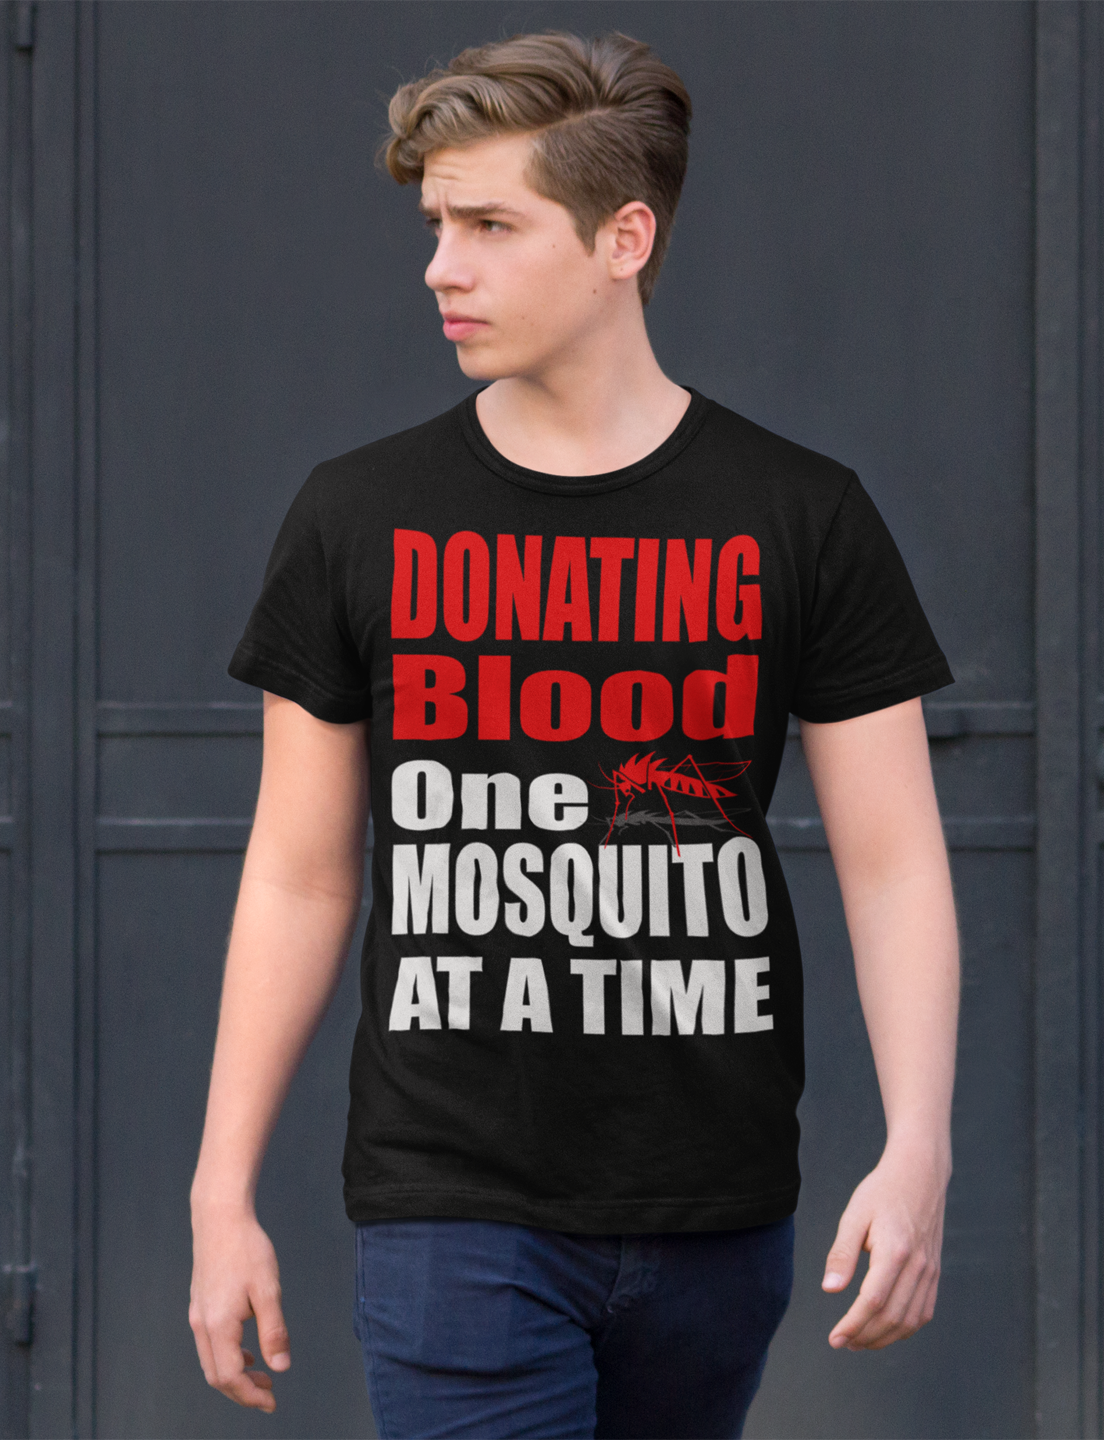 Donating Blood One Mosquito Funny #Camping #Camp Tent Outdoors Humor Mens T-Shirt. You can purchase yours here: https://teespring.com/donating-blood-camping-t-shirt